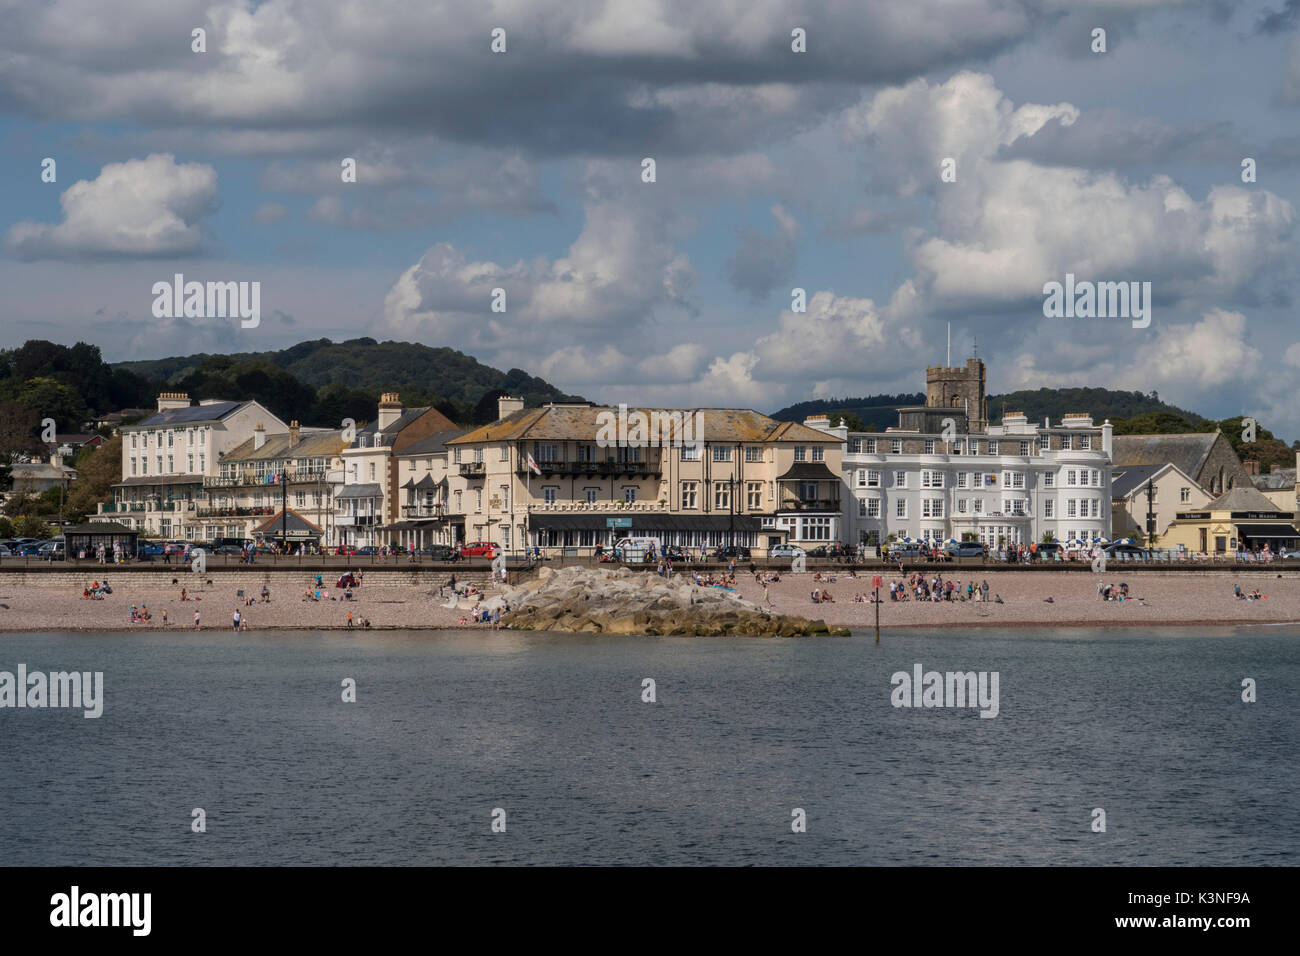 View of the Espanade and Station Road,Sidmouth,with the Bedford and Riviera Hotels. - Stock Image